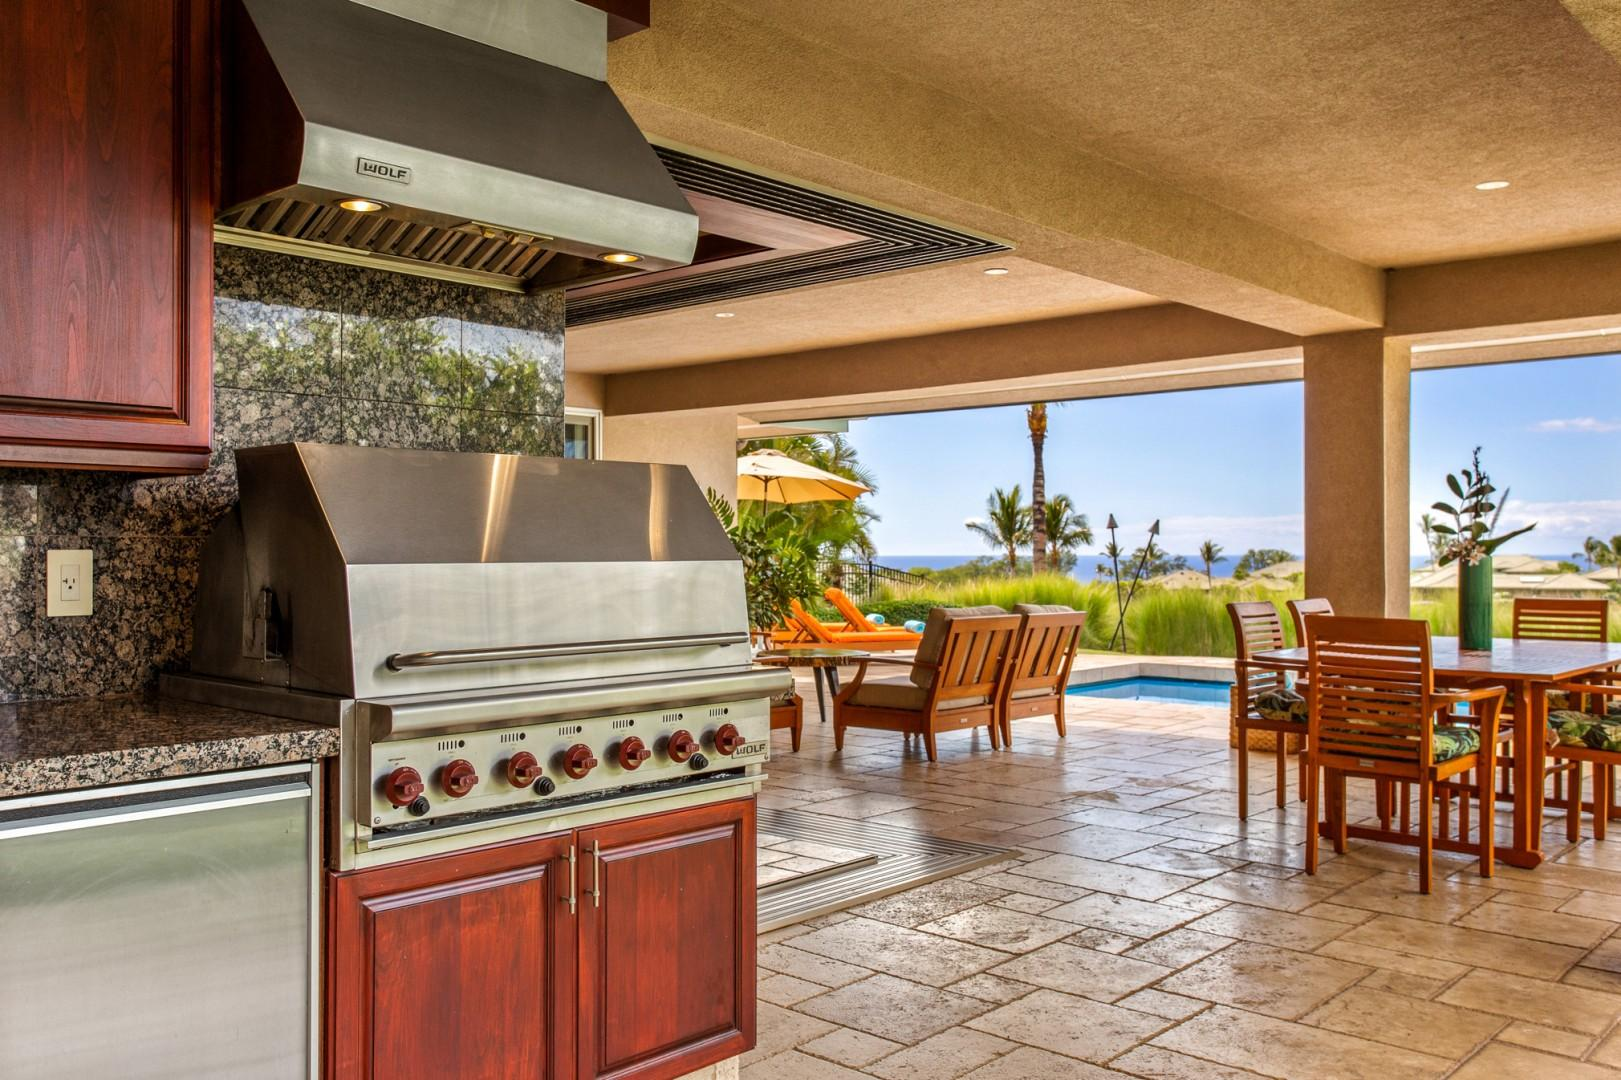 The built-in barbecue grill station with wet bar and mini fridge is perfect for tropical afternoons and evenings.